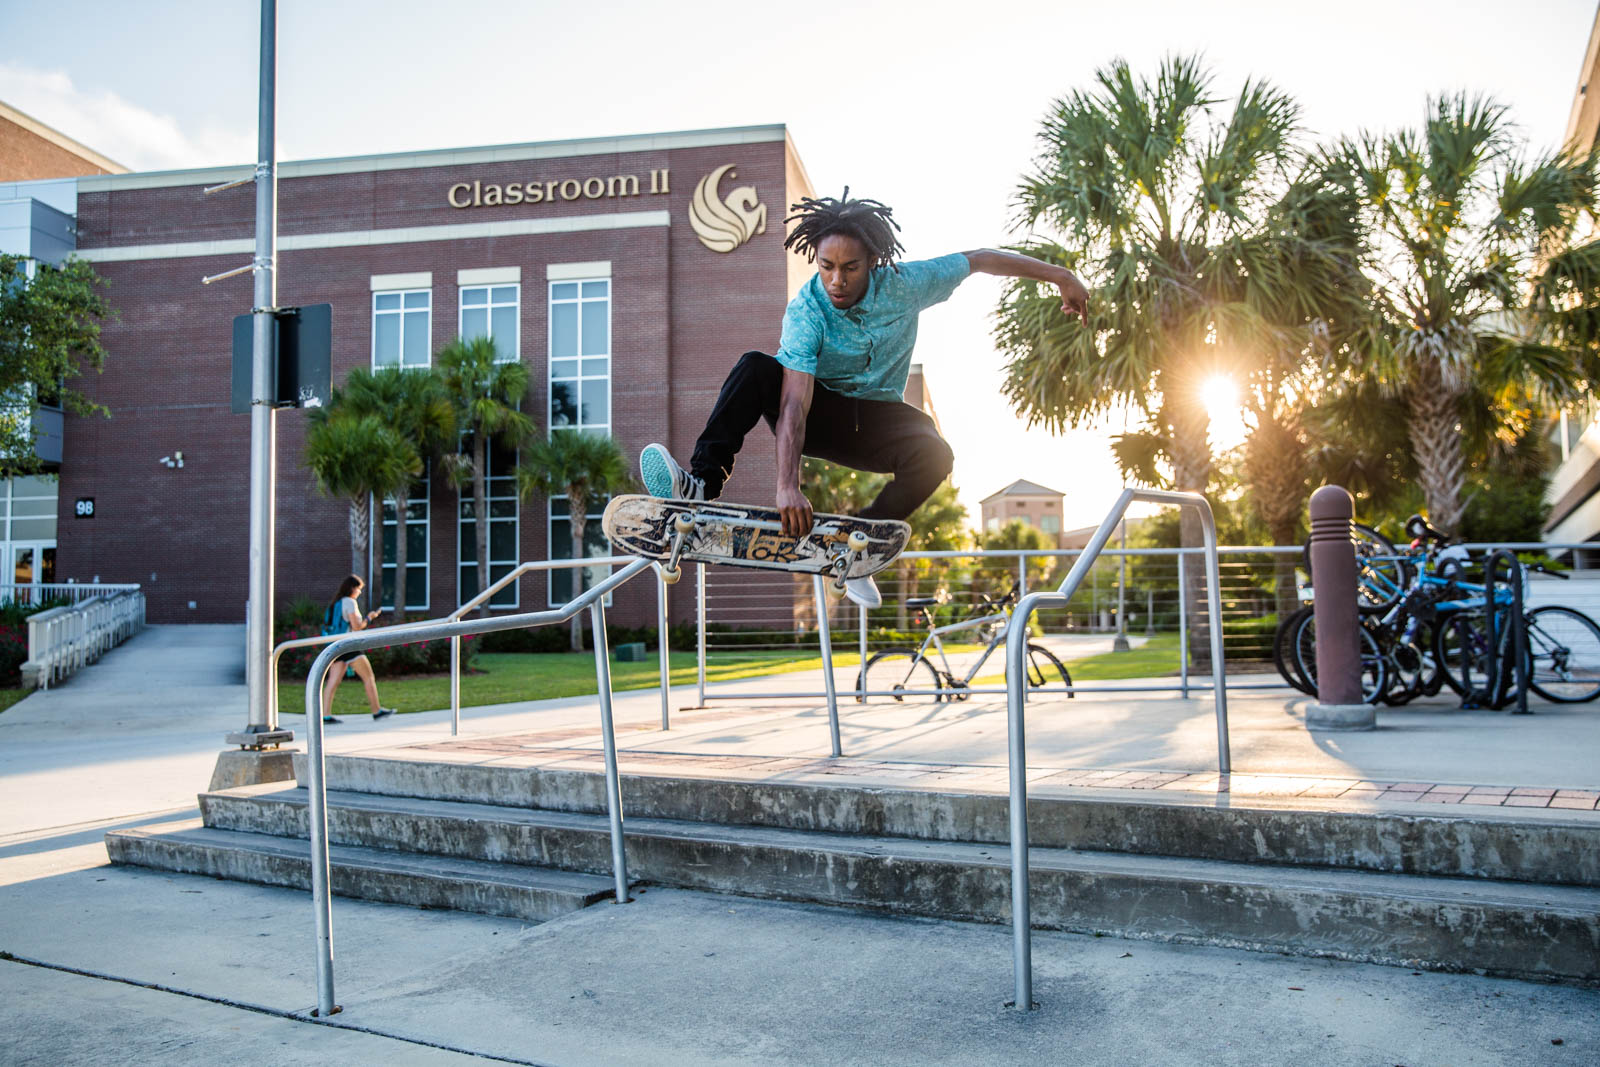 ucf-best-of-photos-skateboarder-on-campus